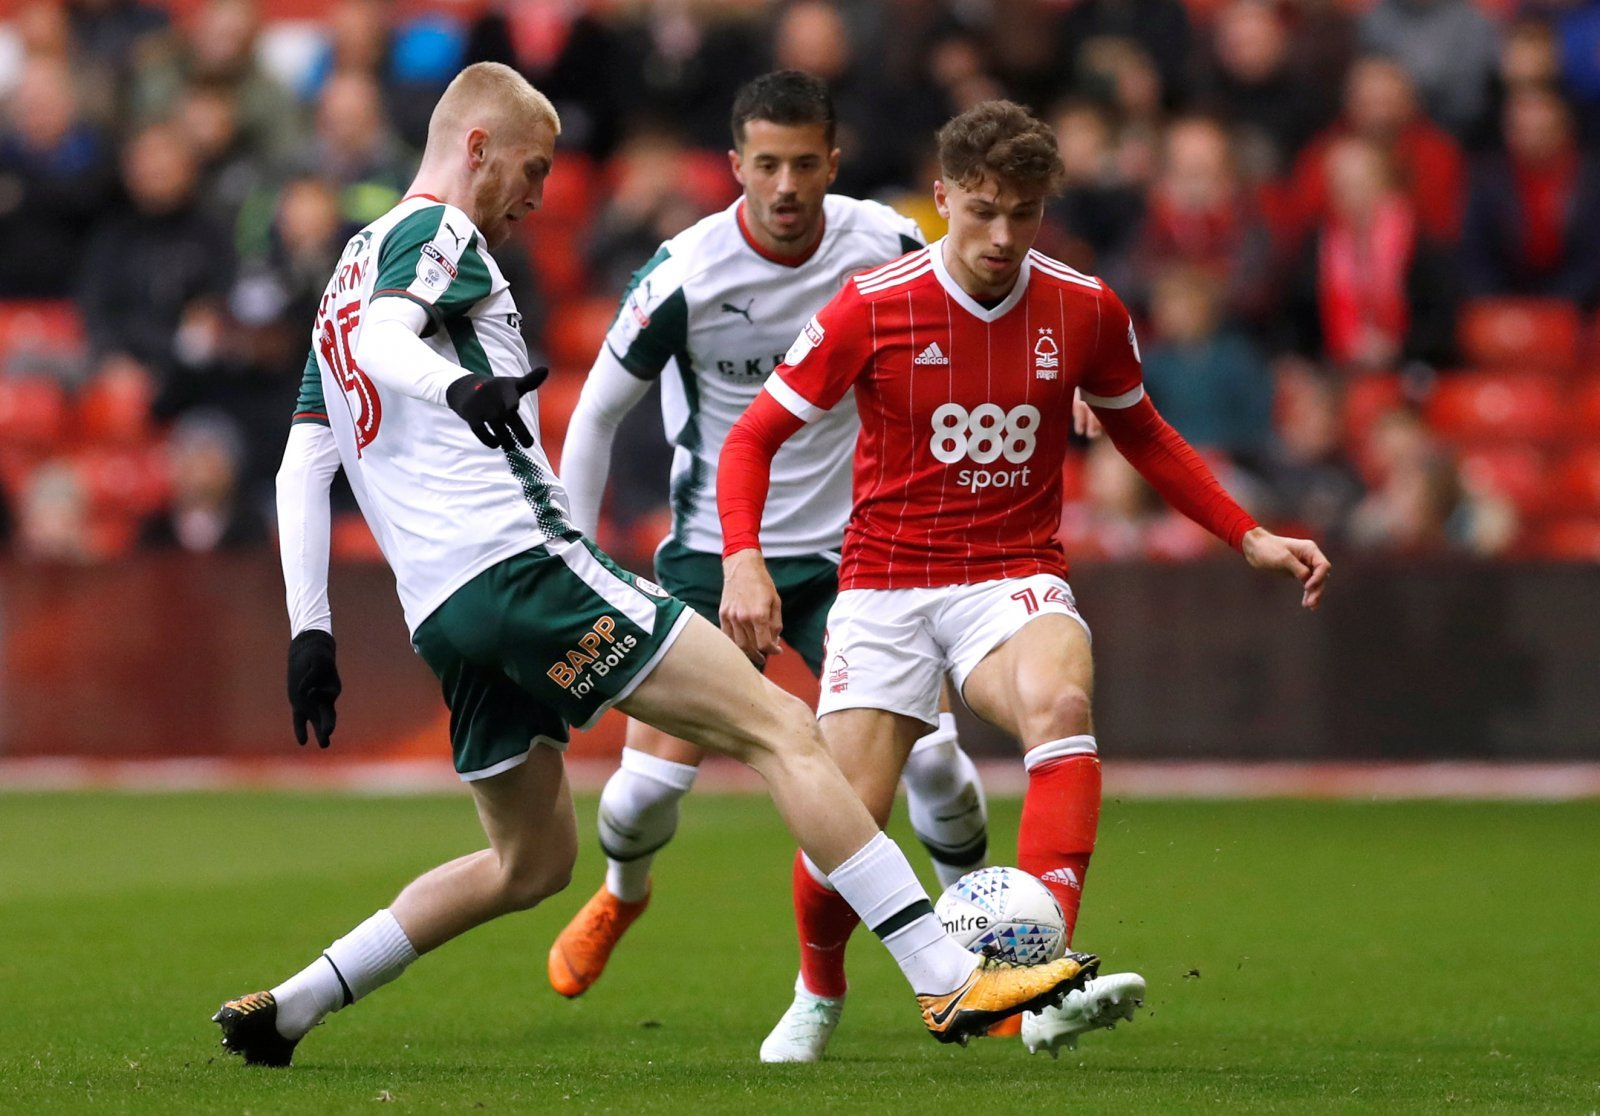 Nottingham Forest: Reds fans laud the versatile Matty Cash